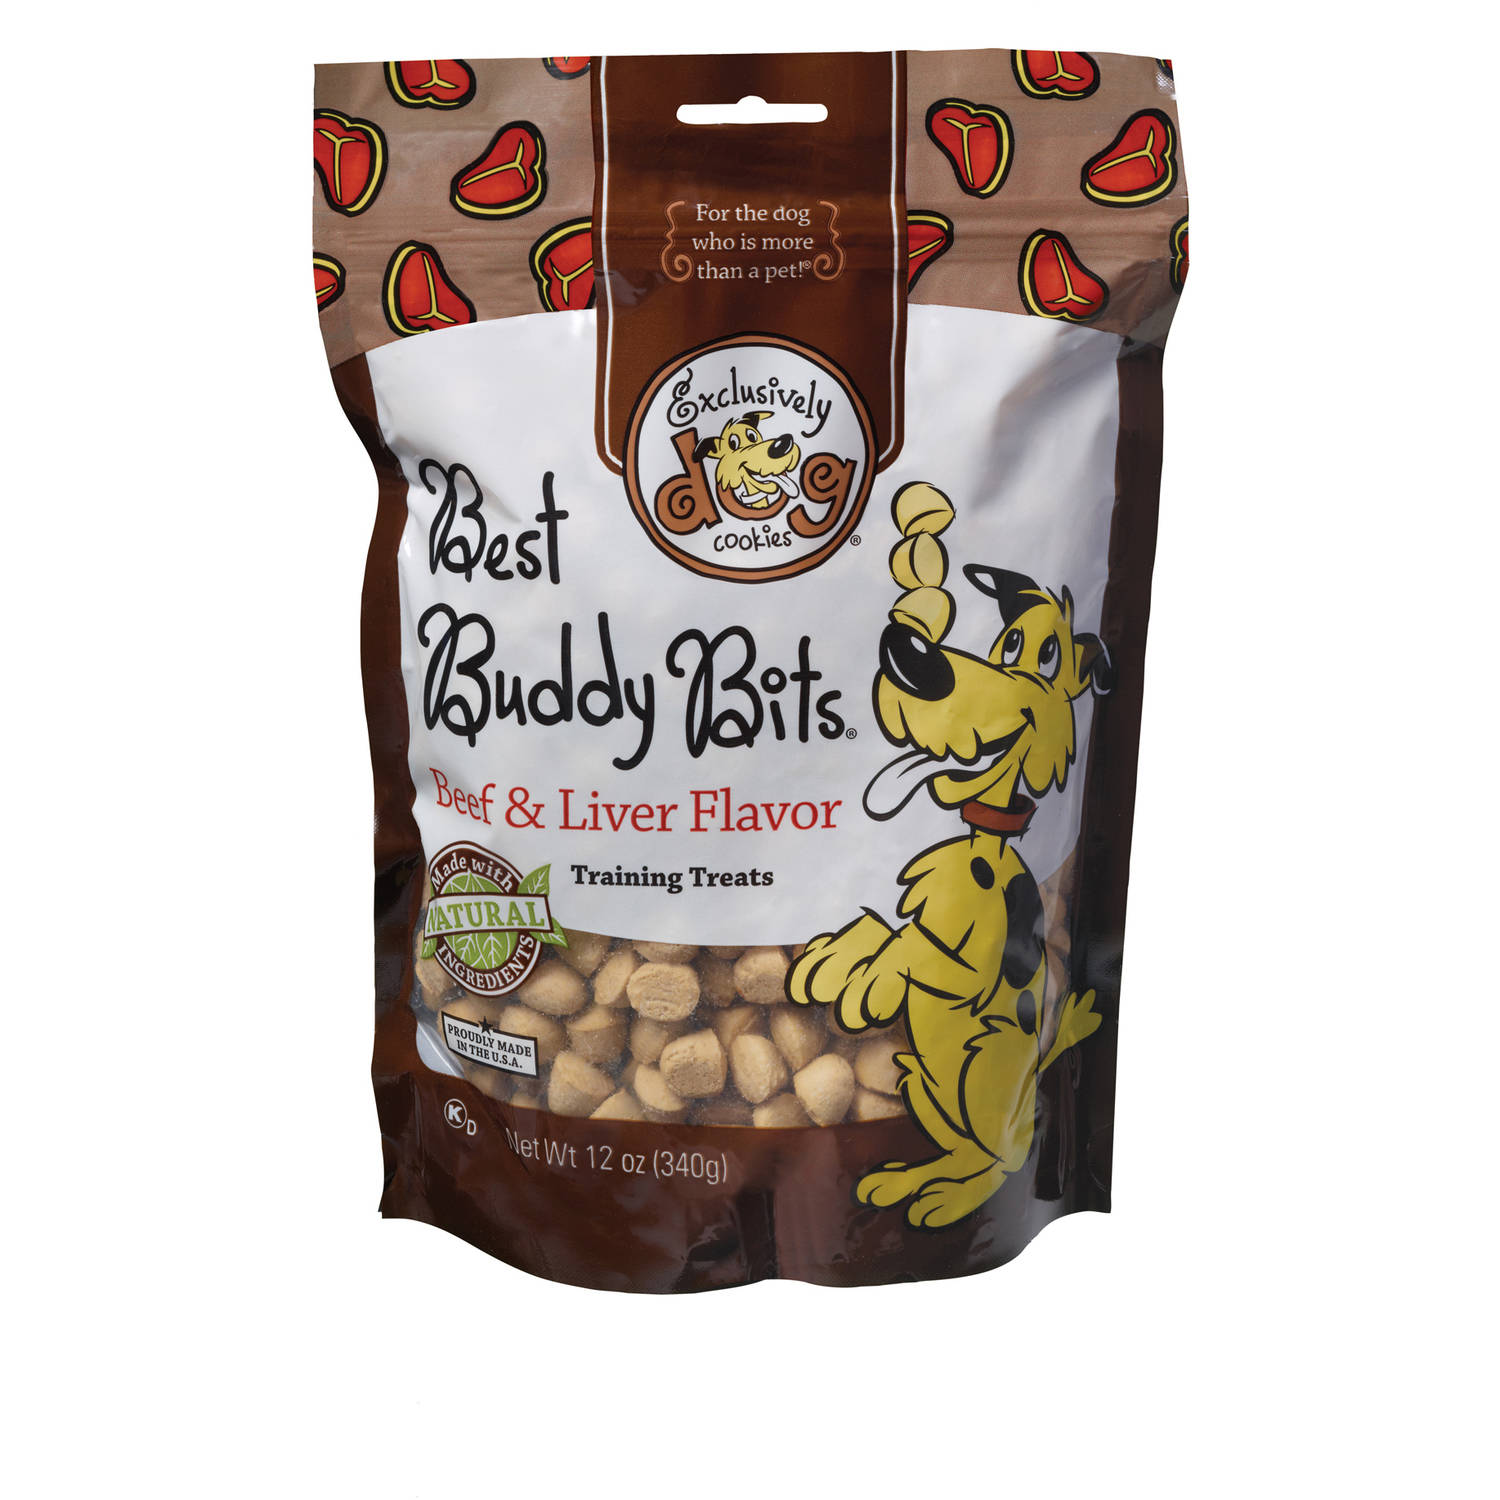 Best Buddy Bits, Beef and Liver Flavor